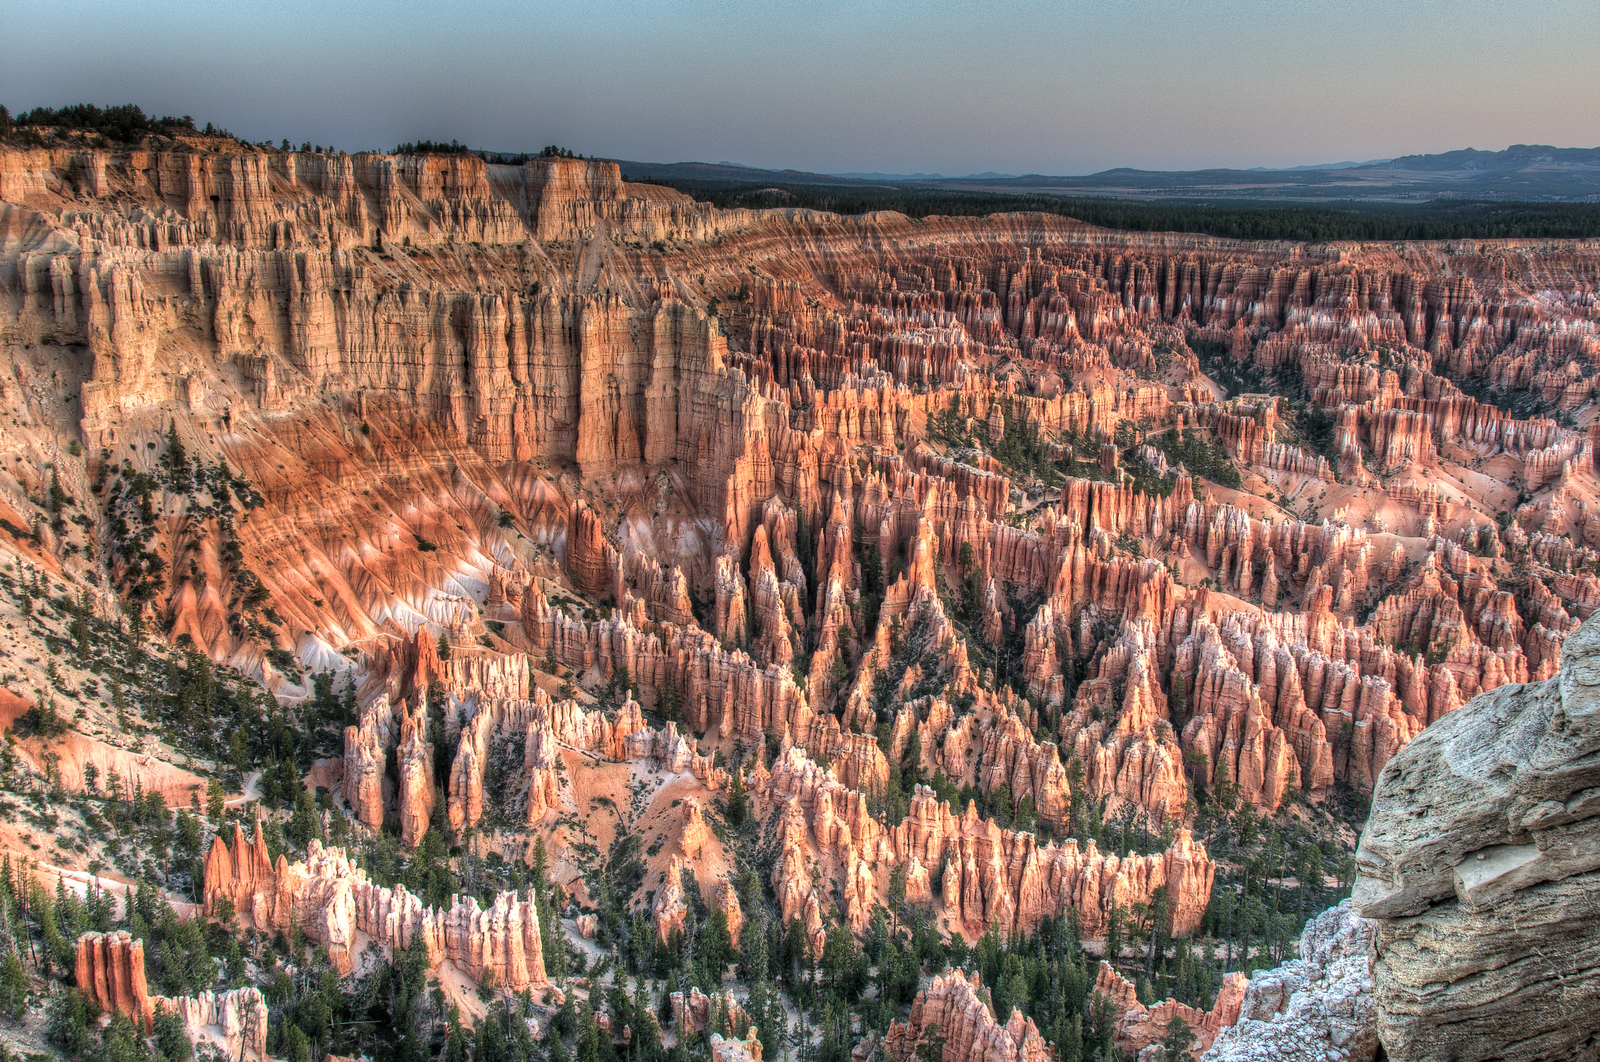 North American National Park: Bryce Canyon National Park, Utah